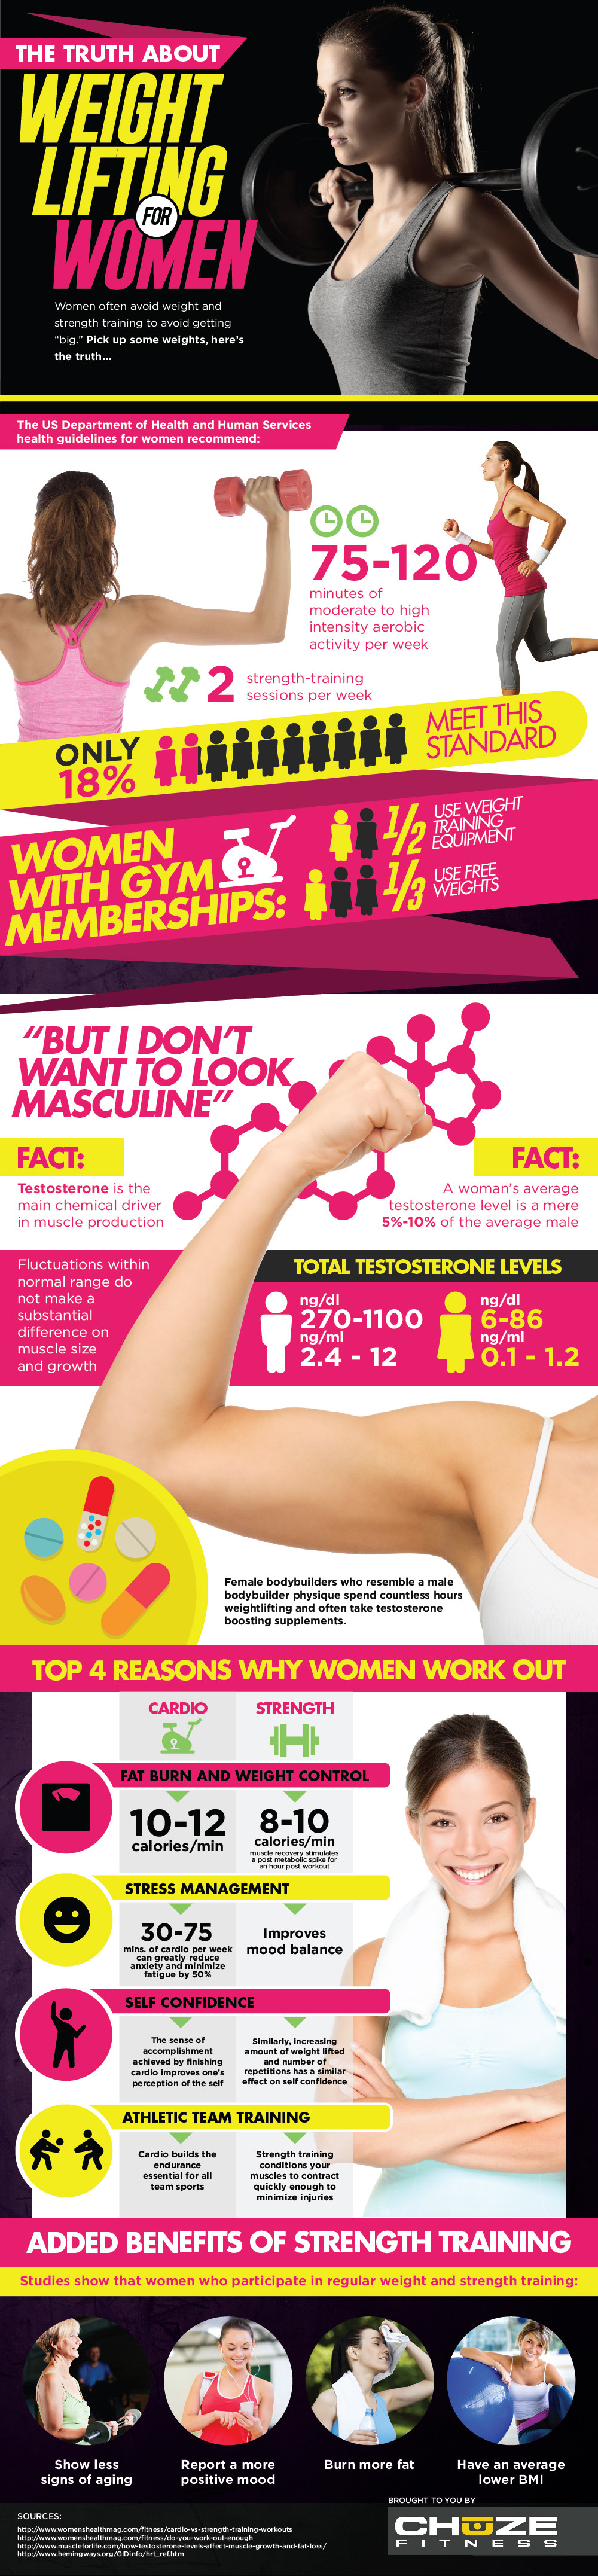 The Truth About Women's Weightlifting